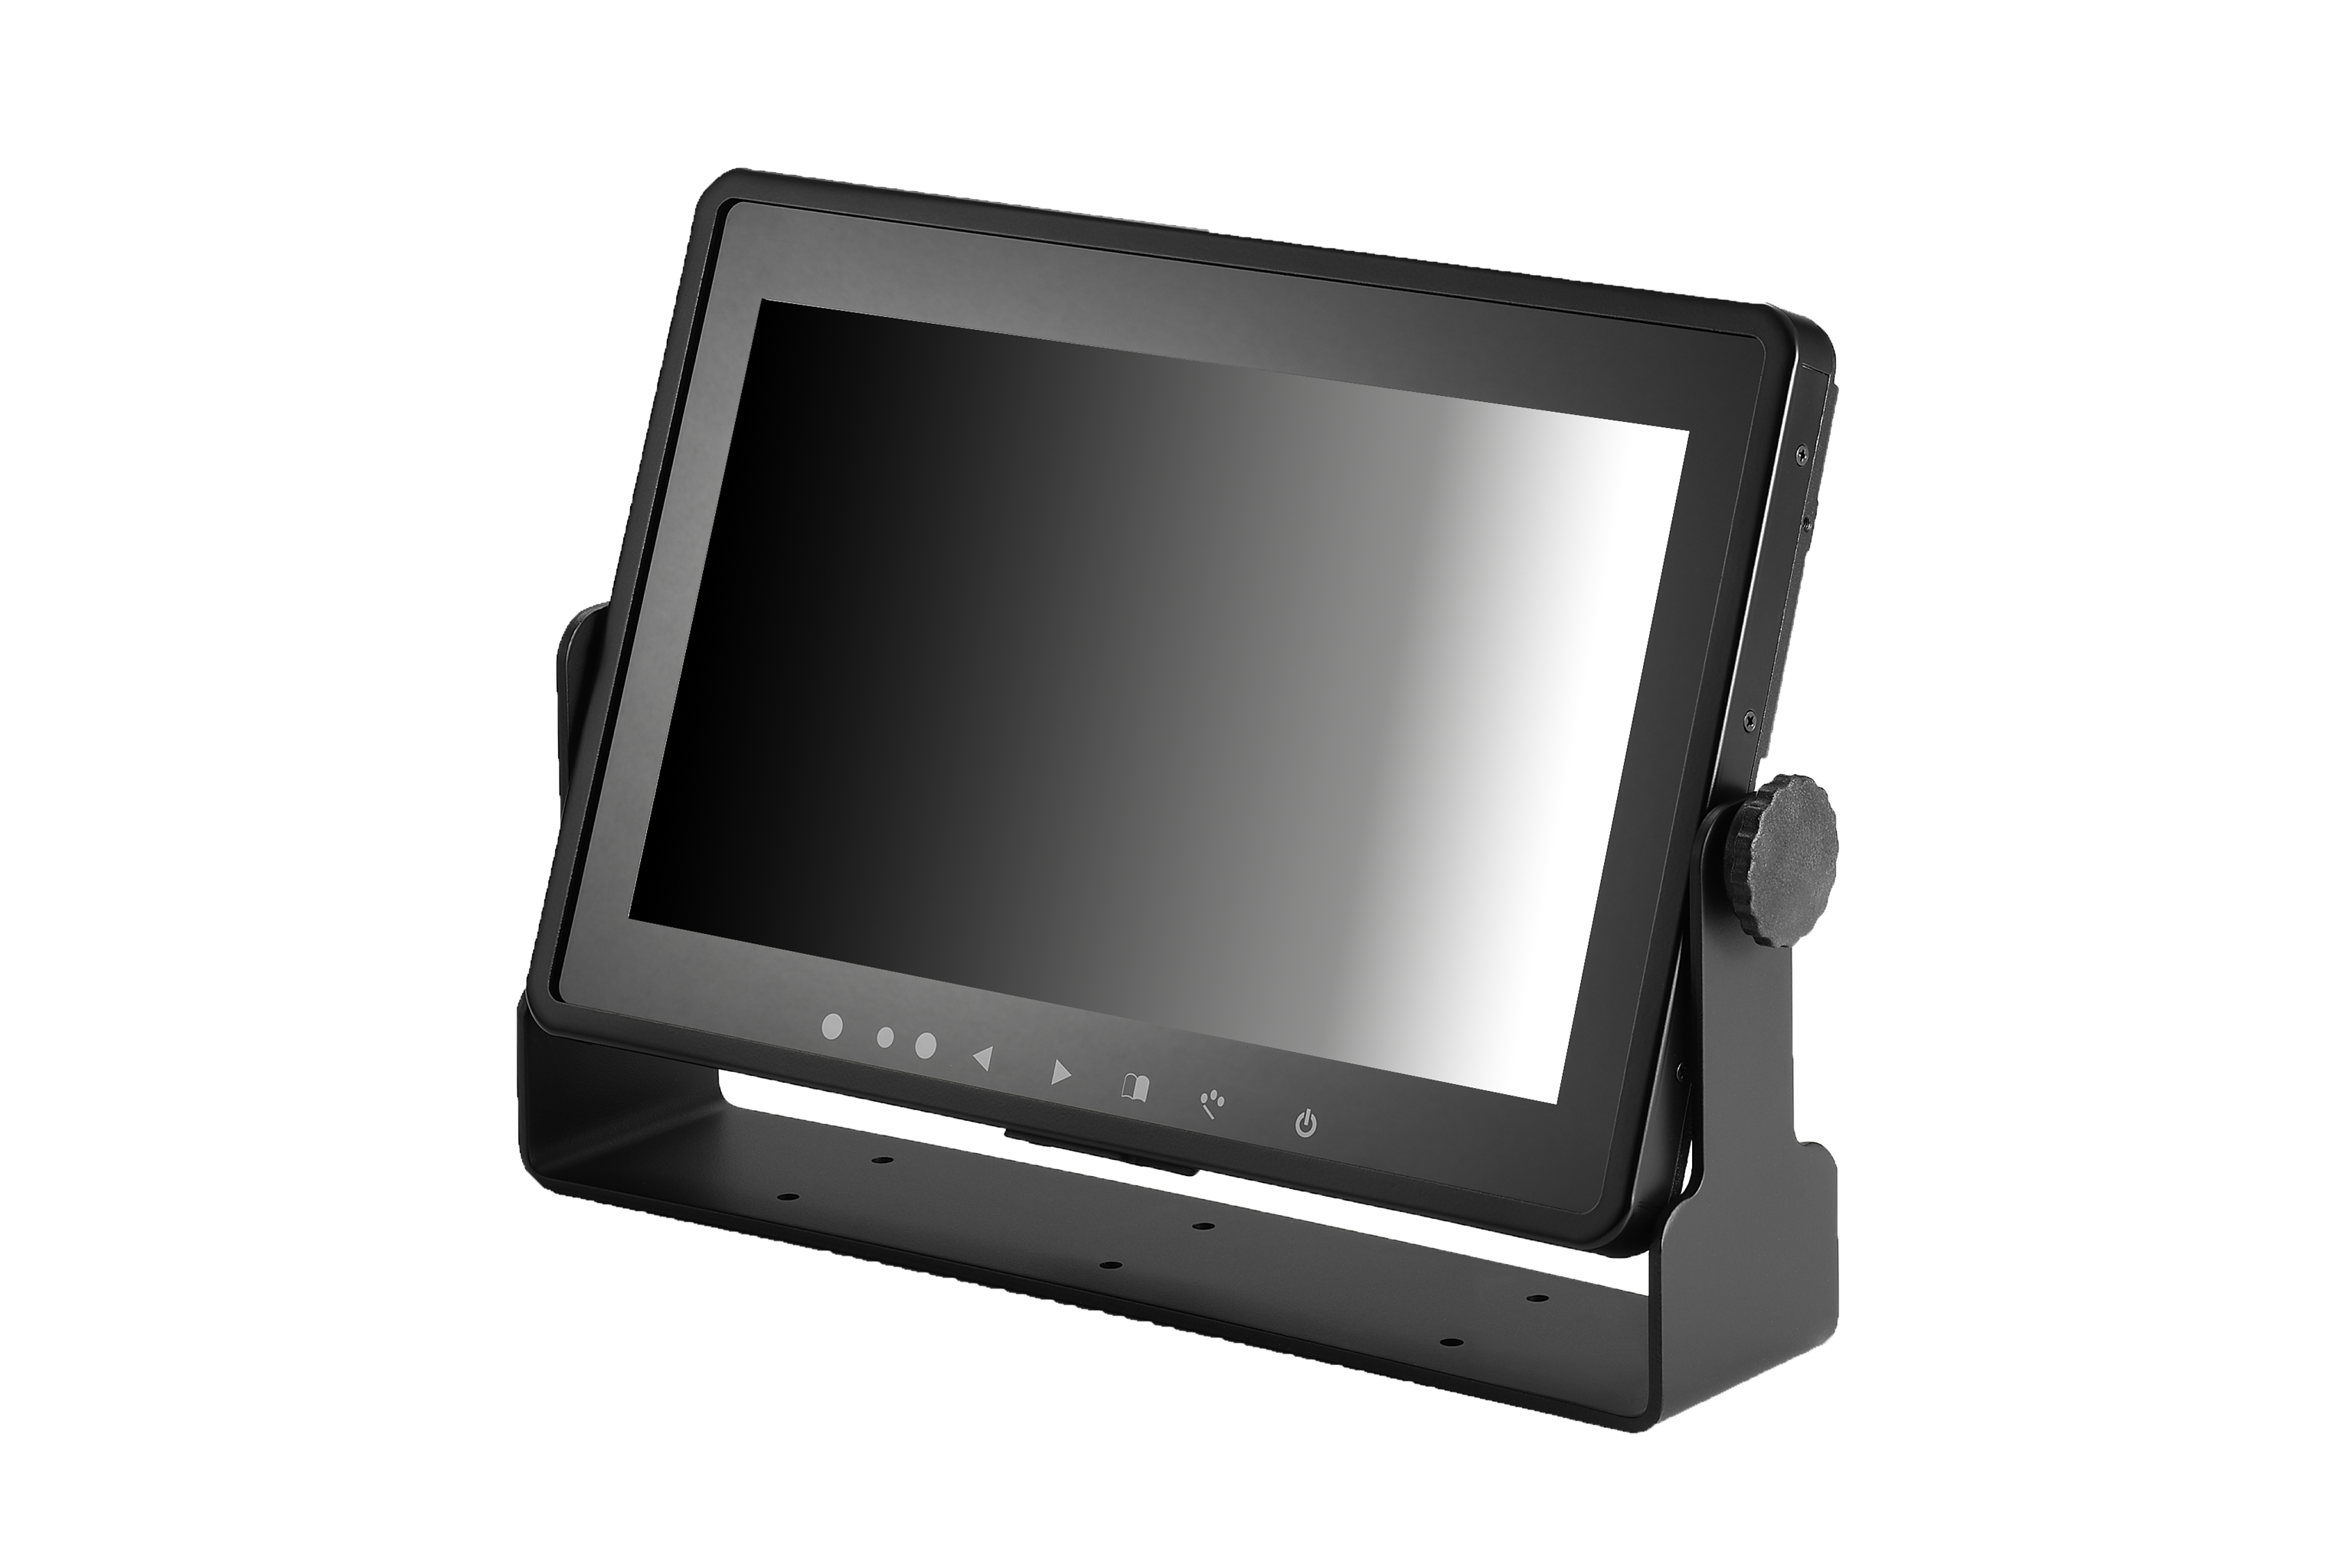 10 1 All Weather Rugged Touchscreen Monitor Works Anywhere Manufactured By Xenarc Technologies Lcd Monitor Industrial Display Lcd Panels